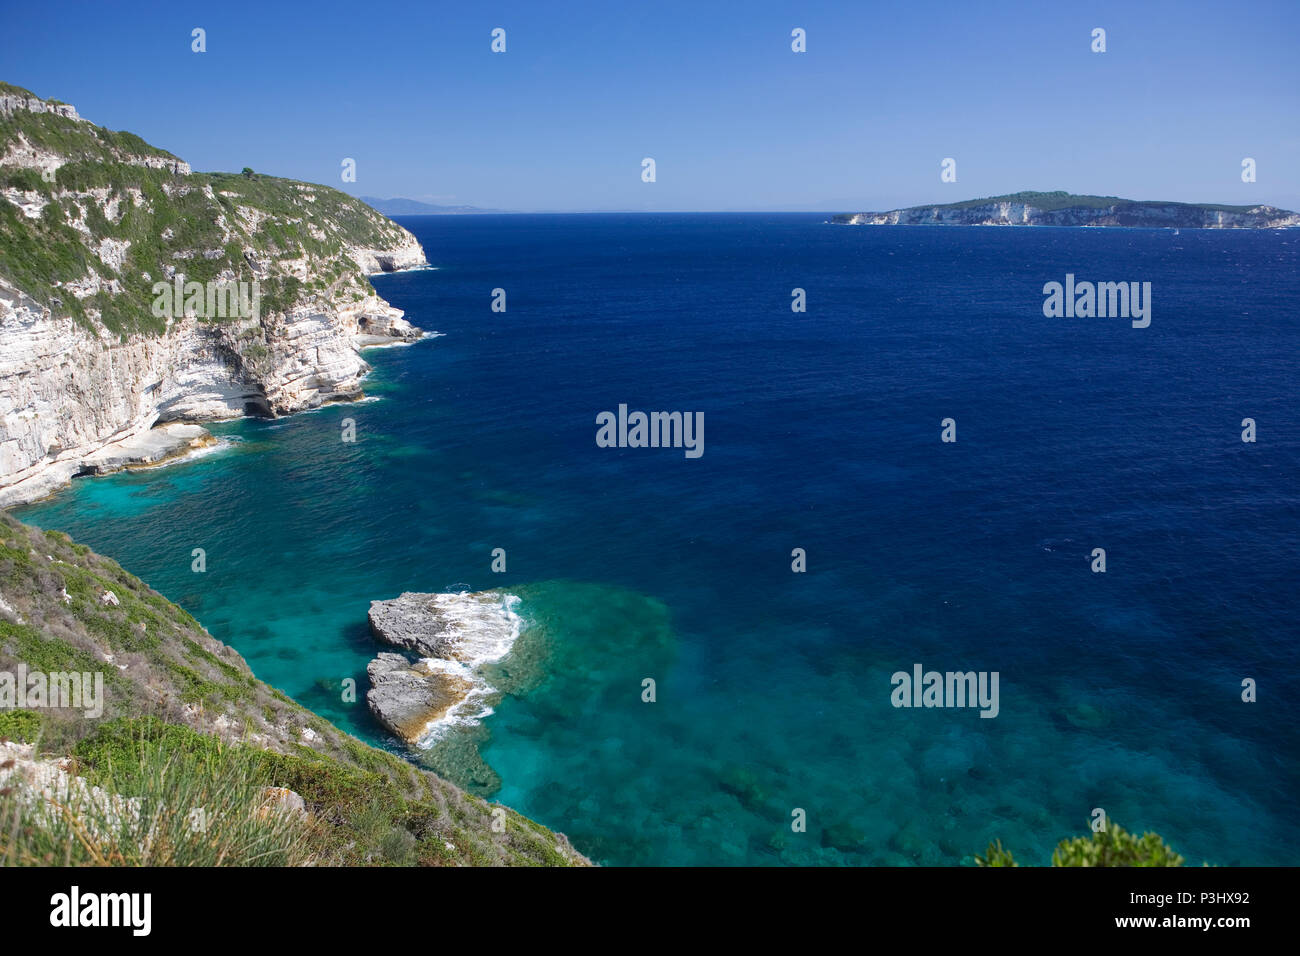 Looking south from the southern end of Paxos to the island of Antipaxos, Greece - Stock Image